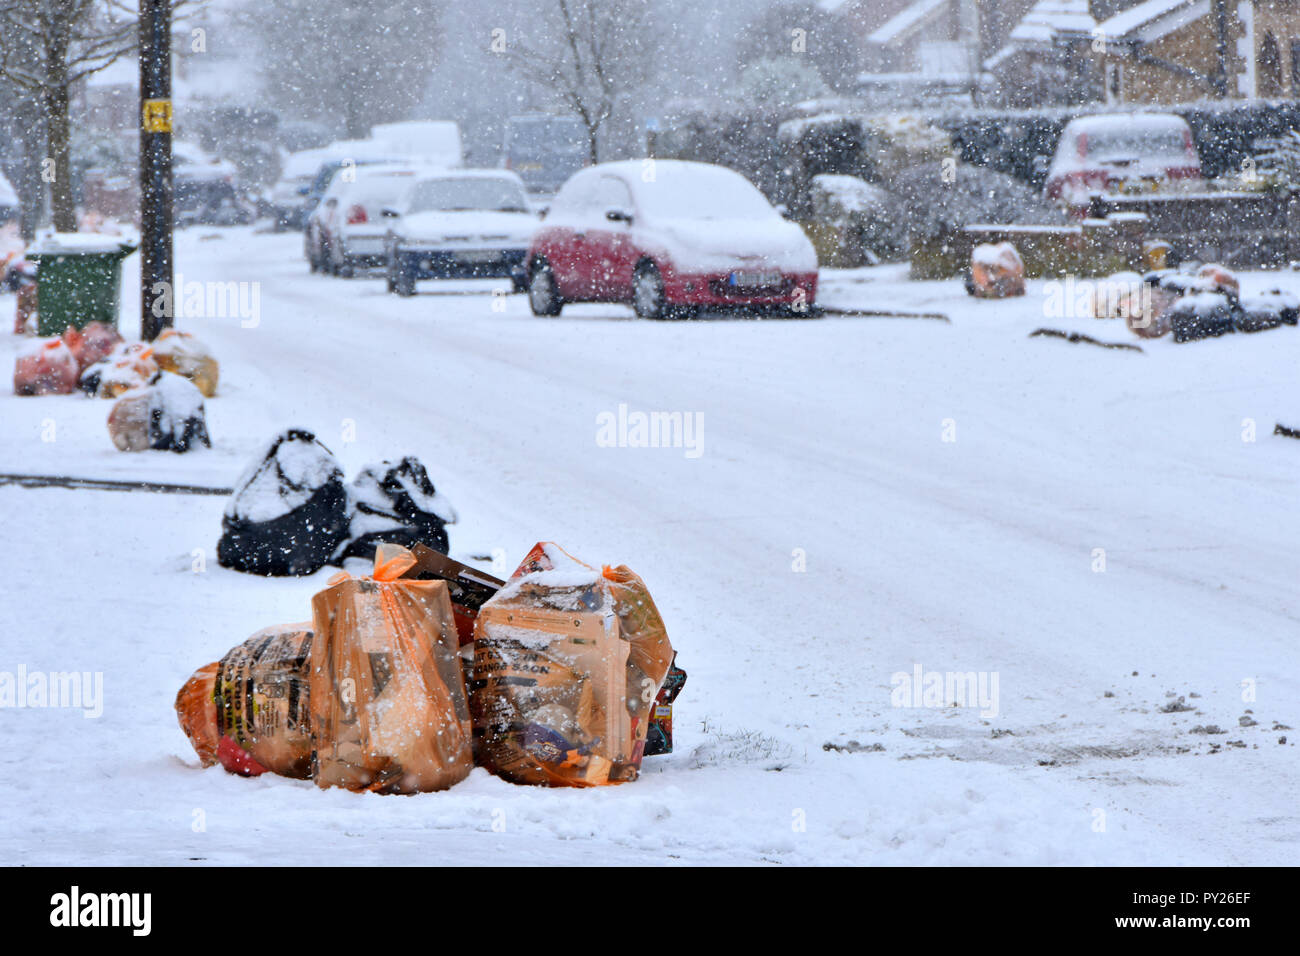 Winter street scene bags of recycle waste & black sack landfill rubbish snow covered on pavement for council waste management team collection truck UK - Stock Image